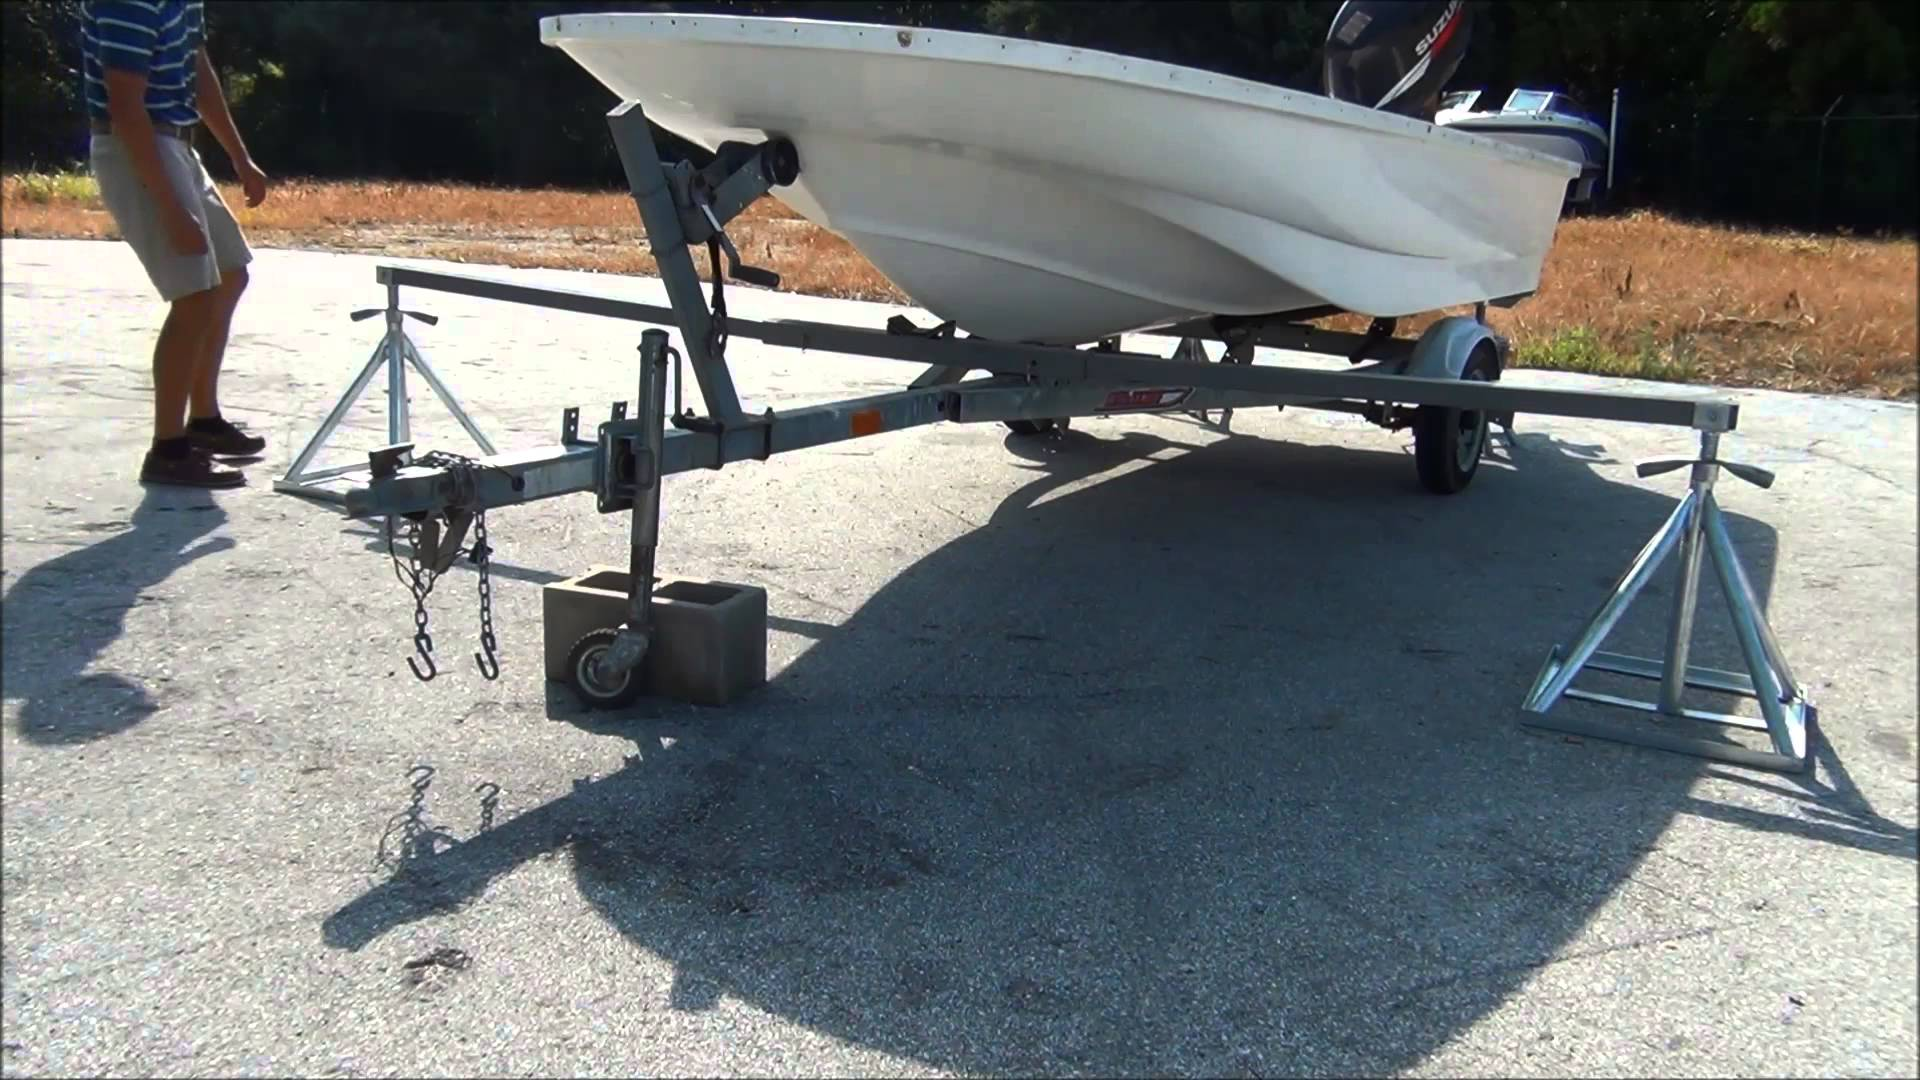 Scaffoldmart's Boat Lift/Trailer Removal System - YouTube